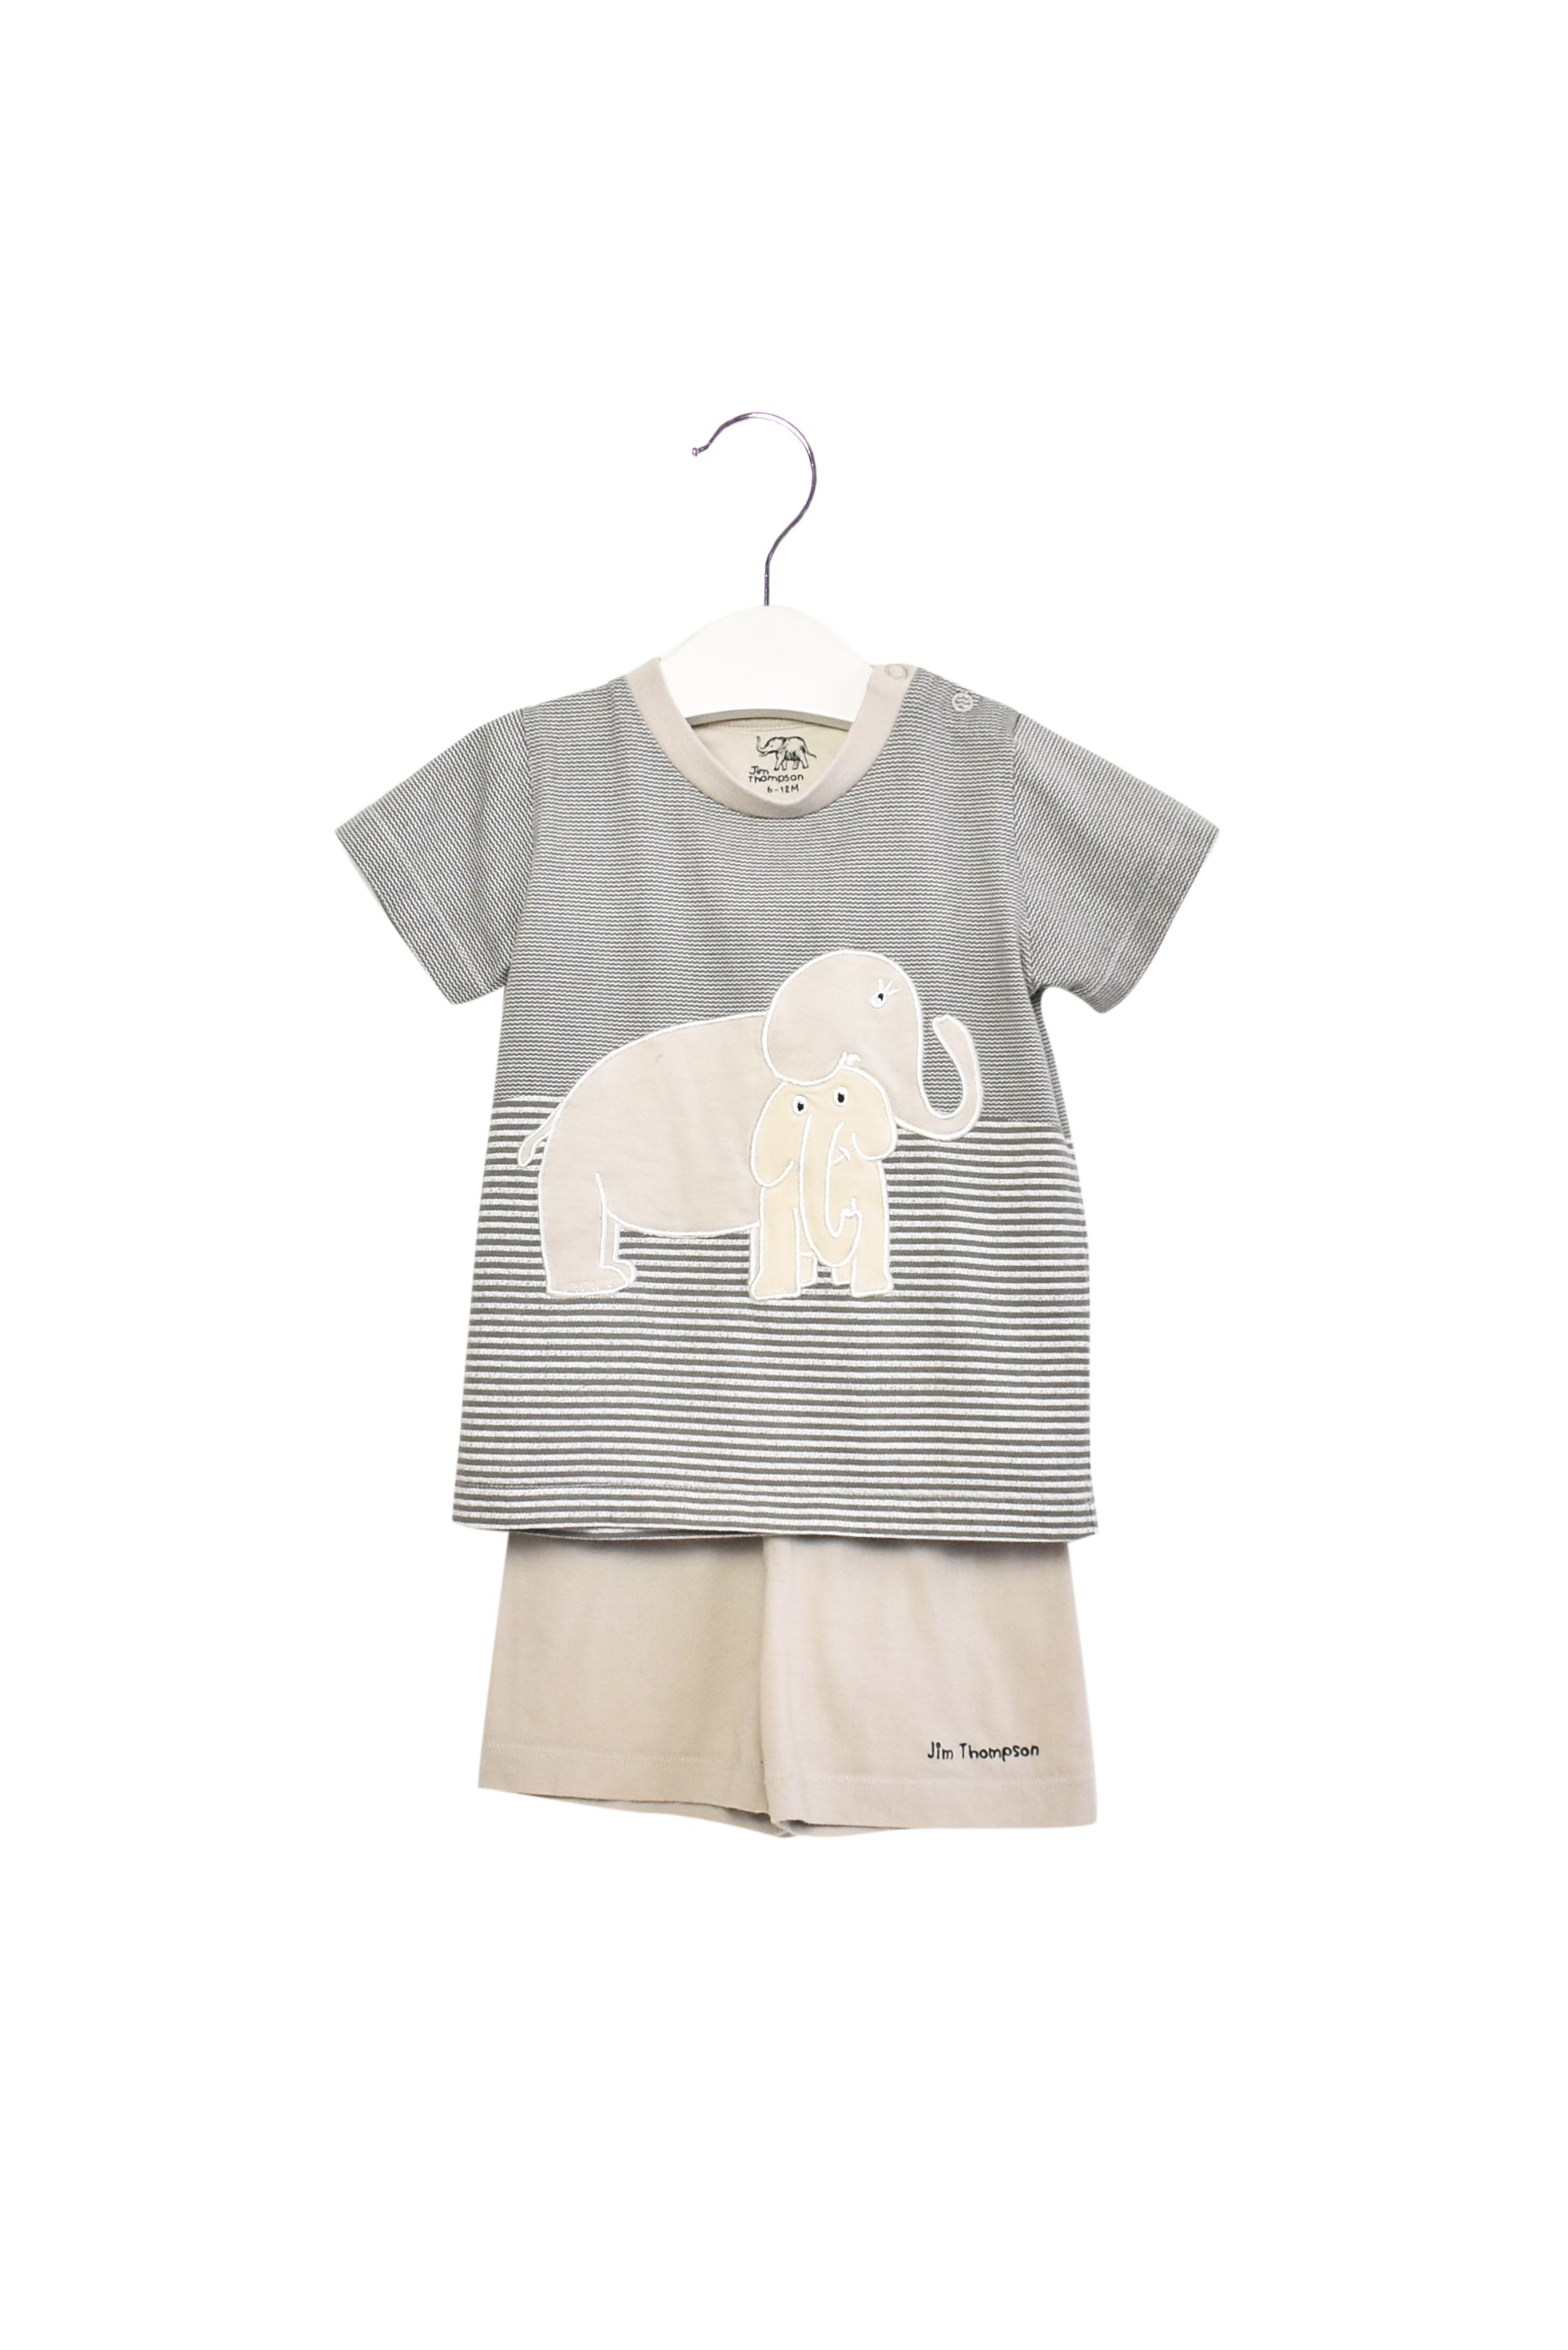 10011866 Jim Thompson Baby~T-Shirt and Shorts Set 6-12M at Retykle